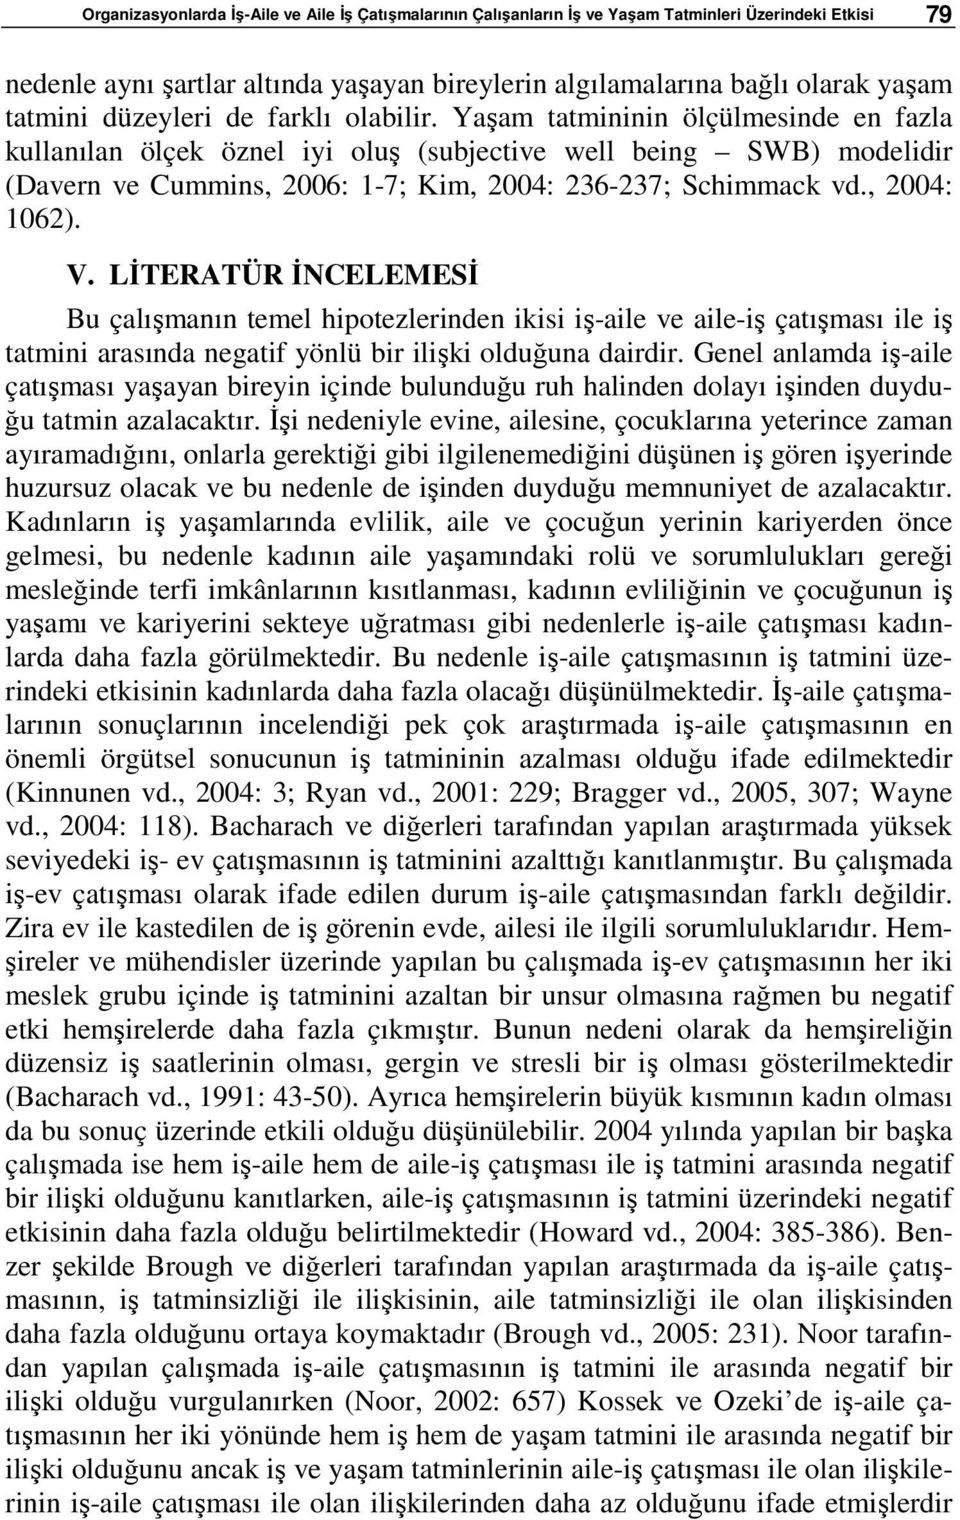 Yaşam tatmininin ölçülmesinde en fazla kullanılan ölçek öznel iyi oluş (subjective well being SWB) modelidir (Davern ve Cummins, 2006: 1-7; Kim, 2004: 236-237; Schimmack vd., 2004: 1062). V.